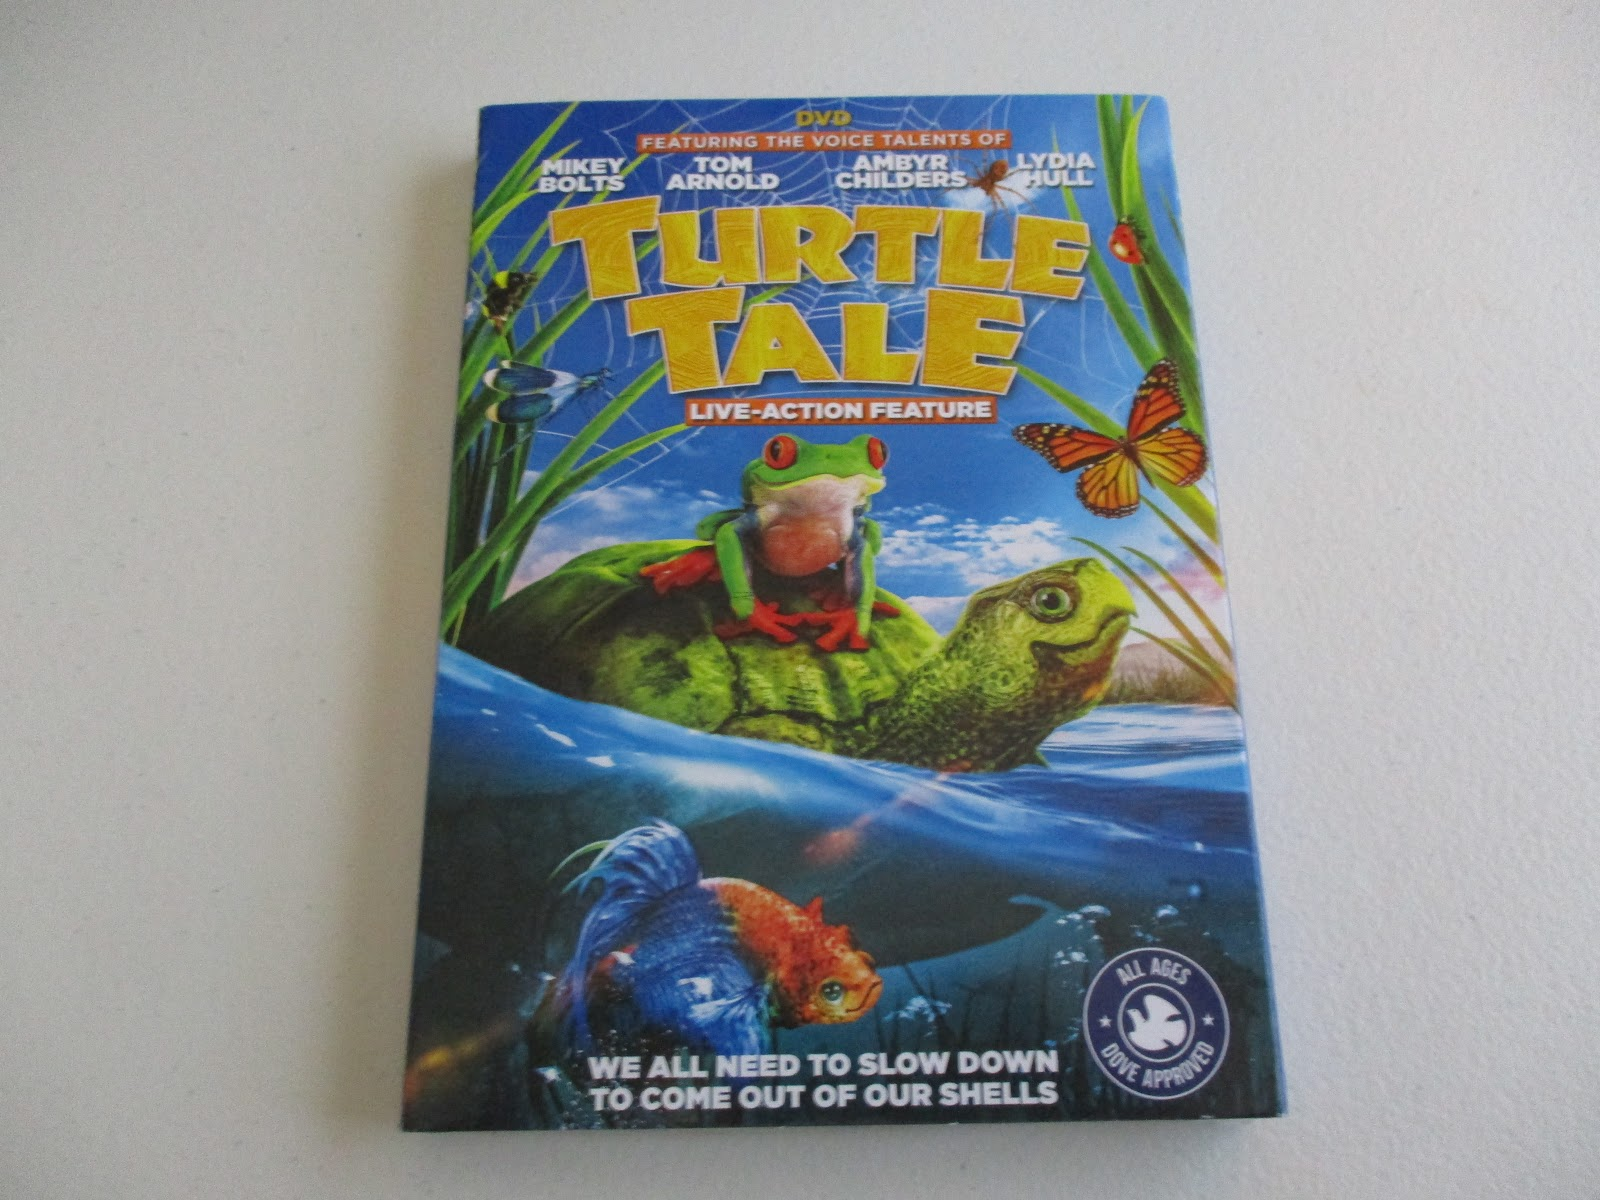 Missys Product Reviews : Turtle Tale Movie Review ...